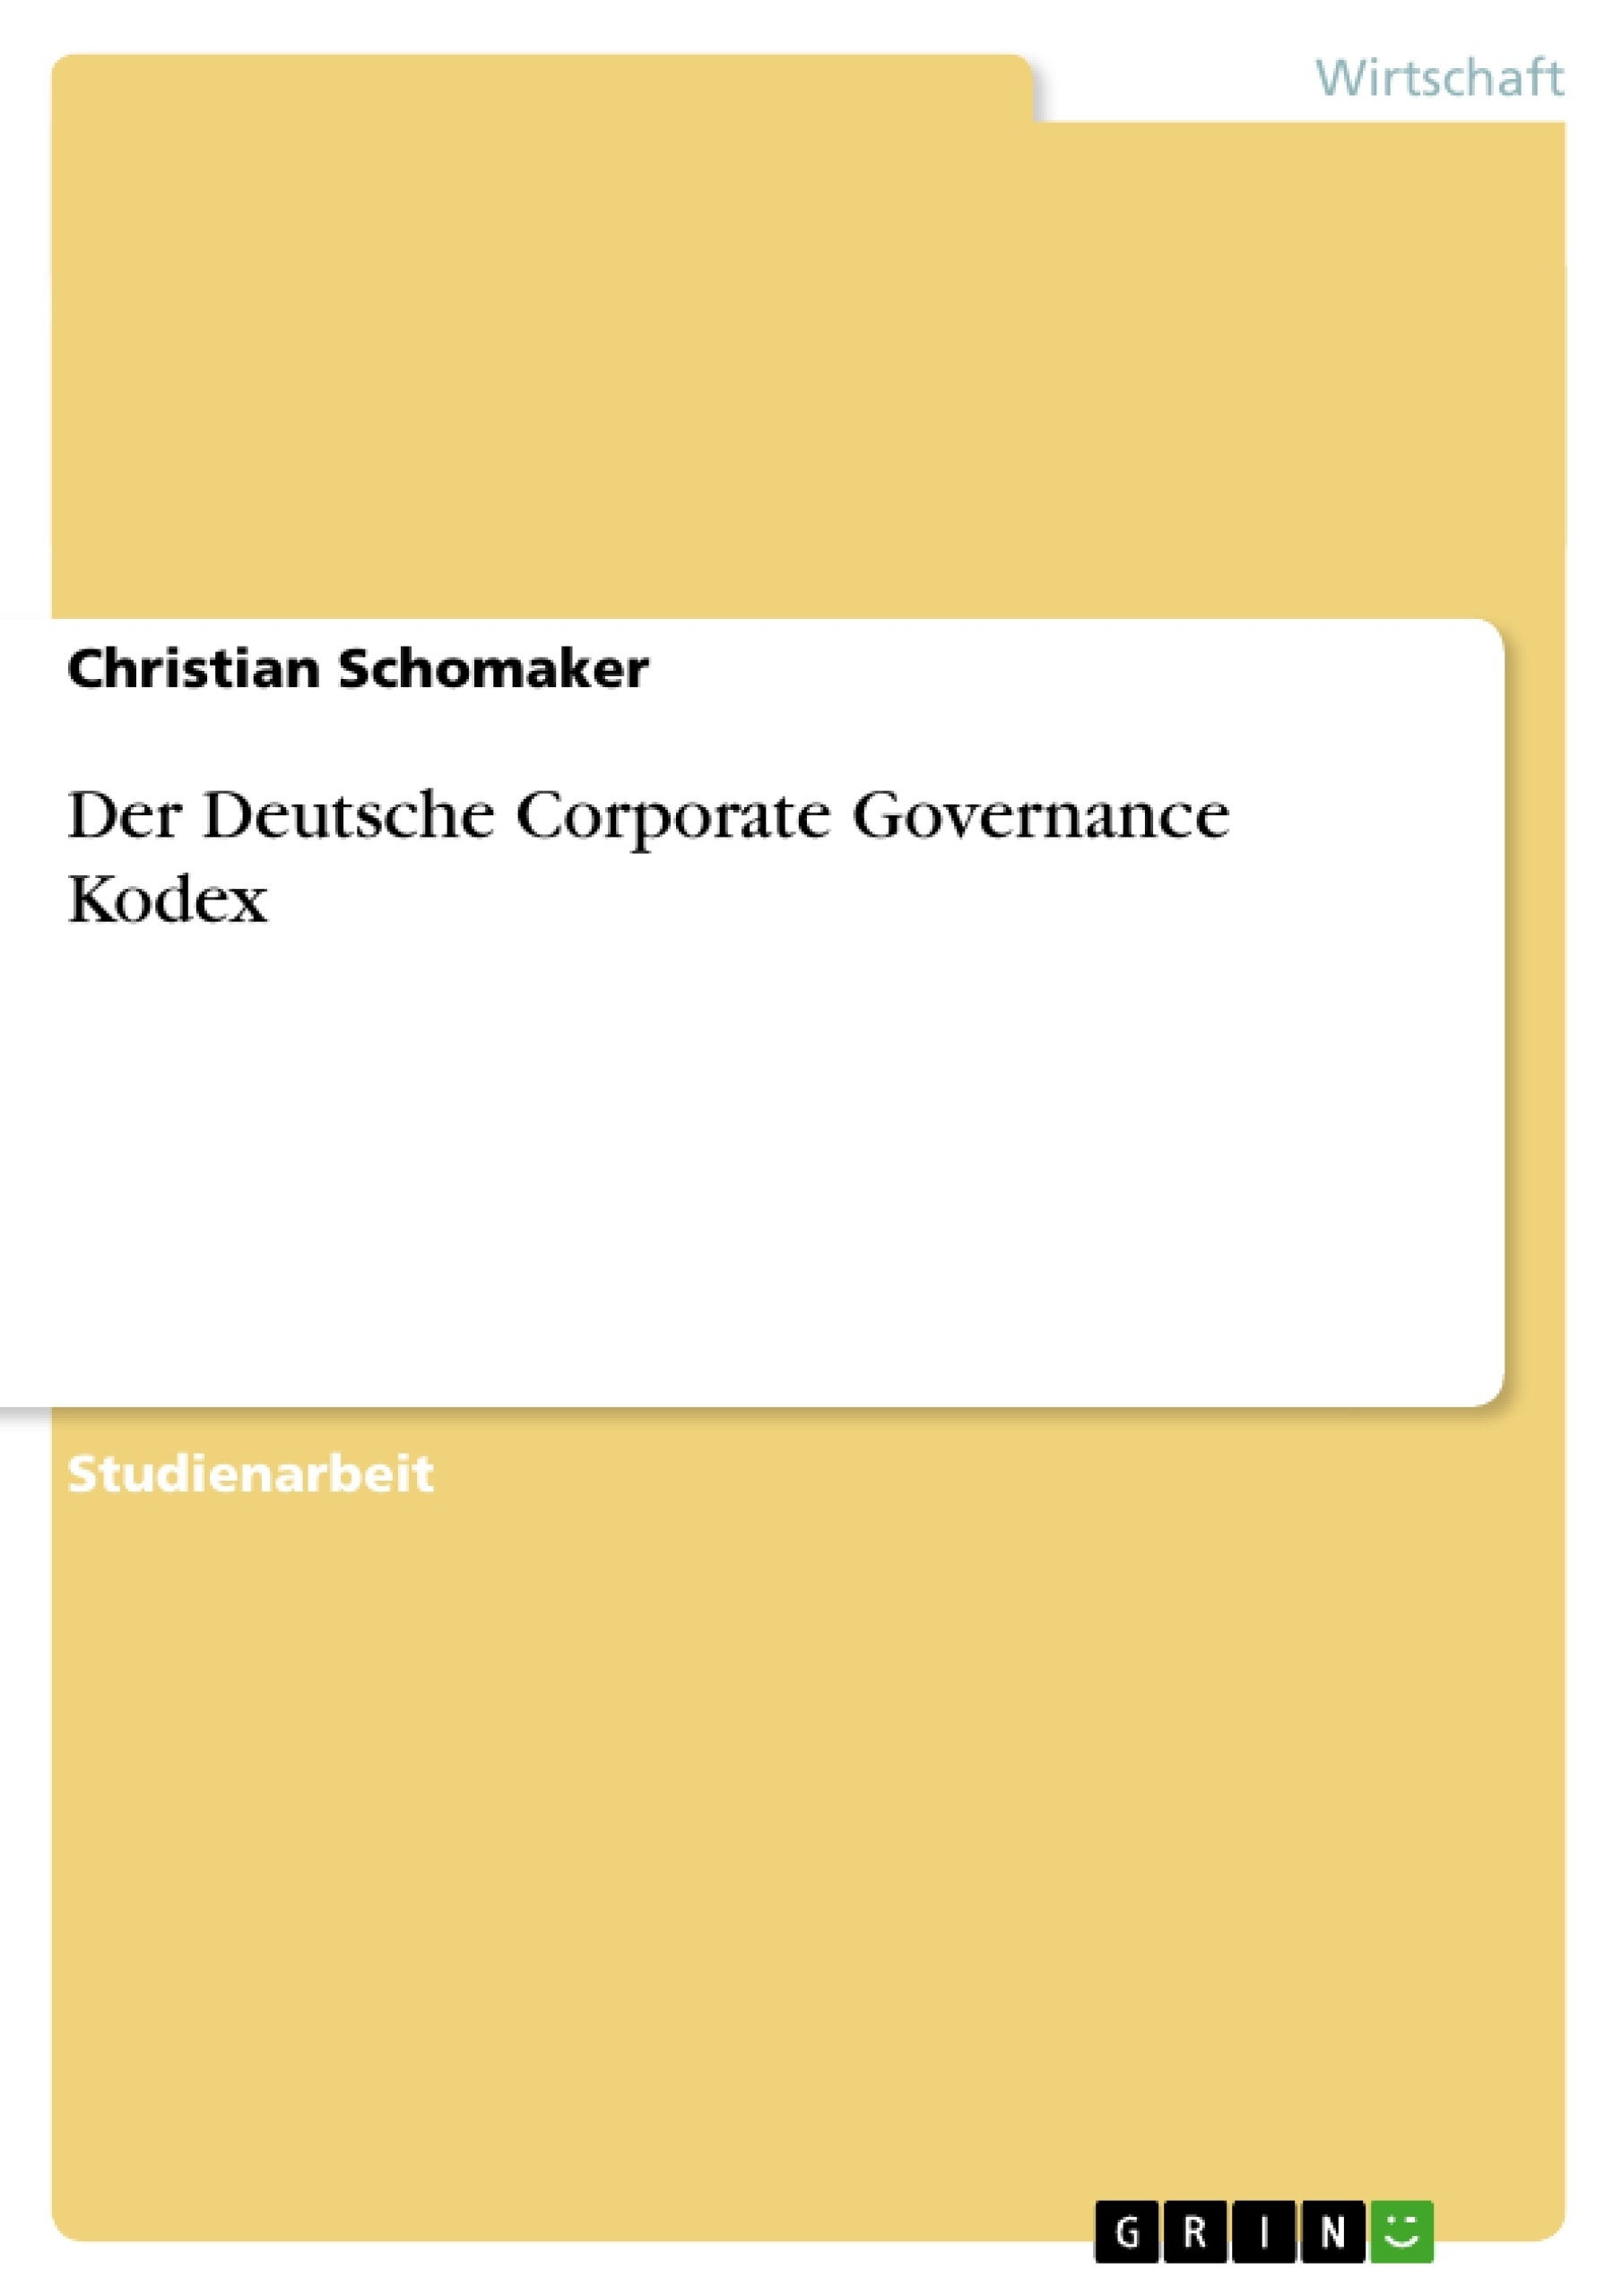 Titel: Der Deutsche Corporate Governance Kodex